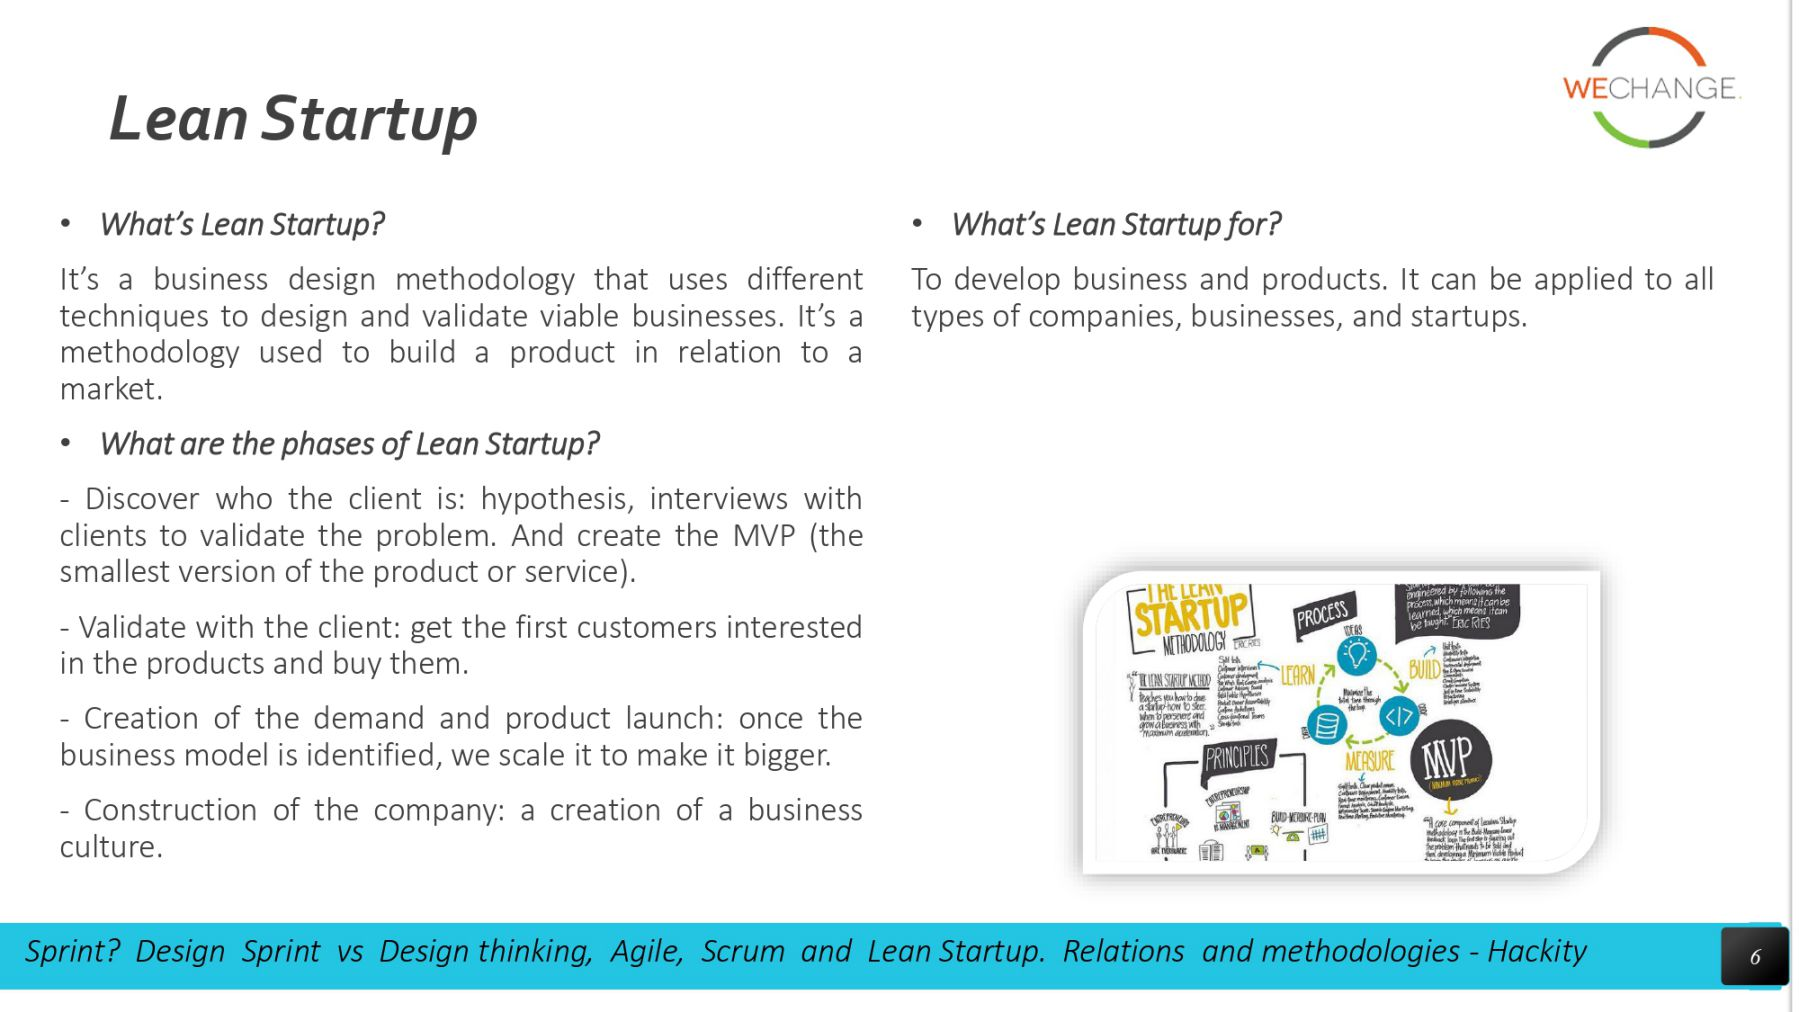 Design thinking lean startup and agile page 0005 compressed 1 Design thinking lean startup and agile